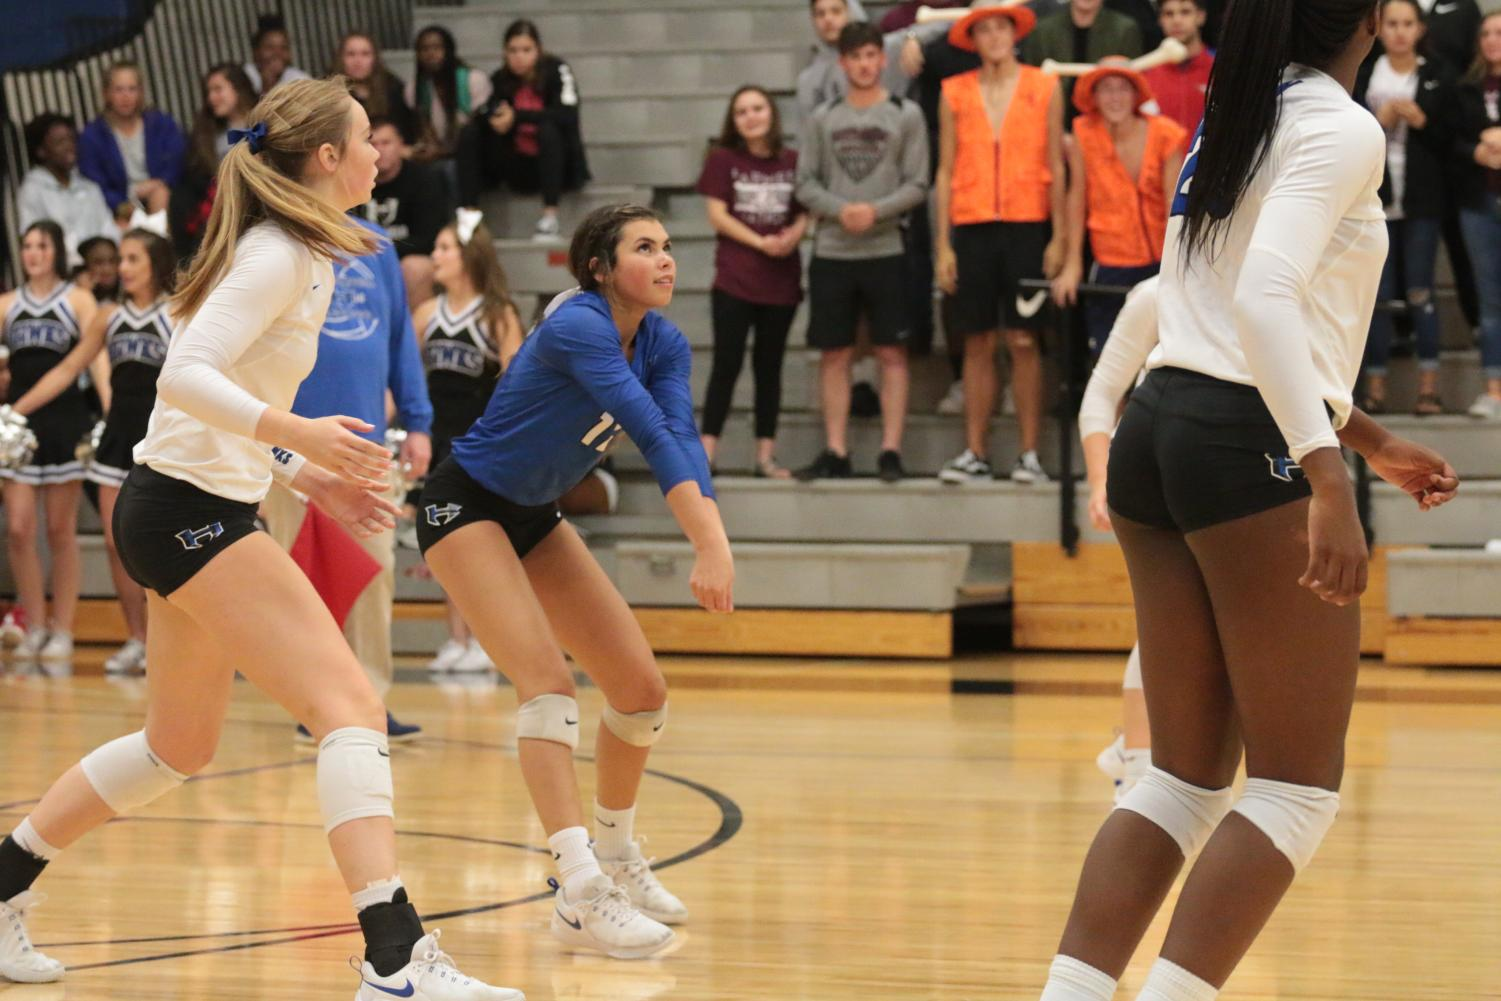 Junior Isabelle Ousby moves forward to save the ball in the game against Lewisville.